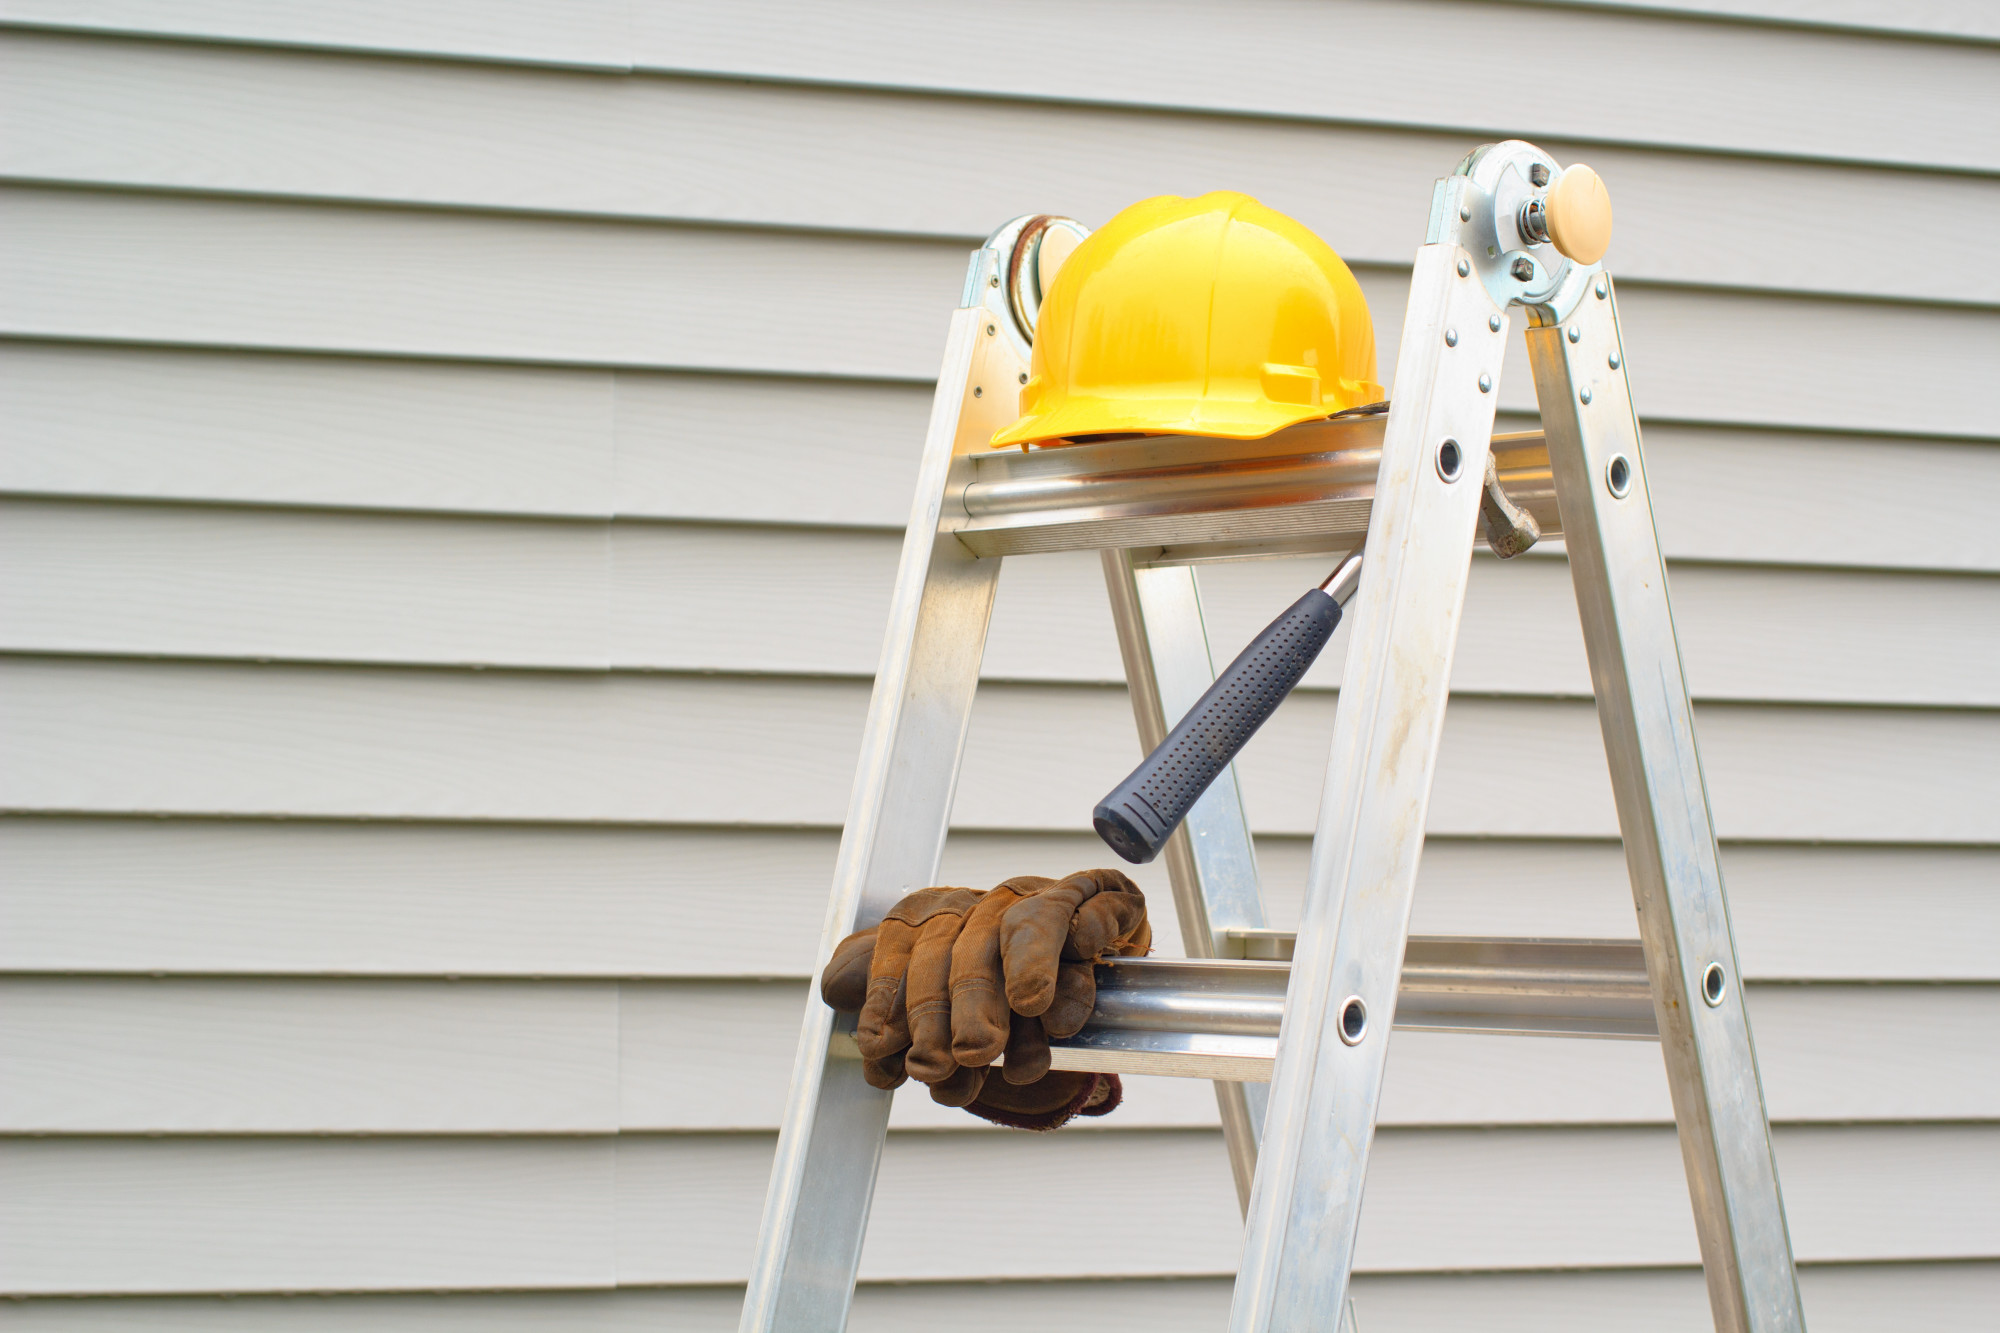 5 Key Questions to Ask Before Hiring a Siding Contractor